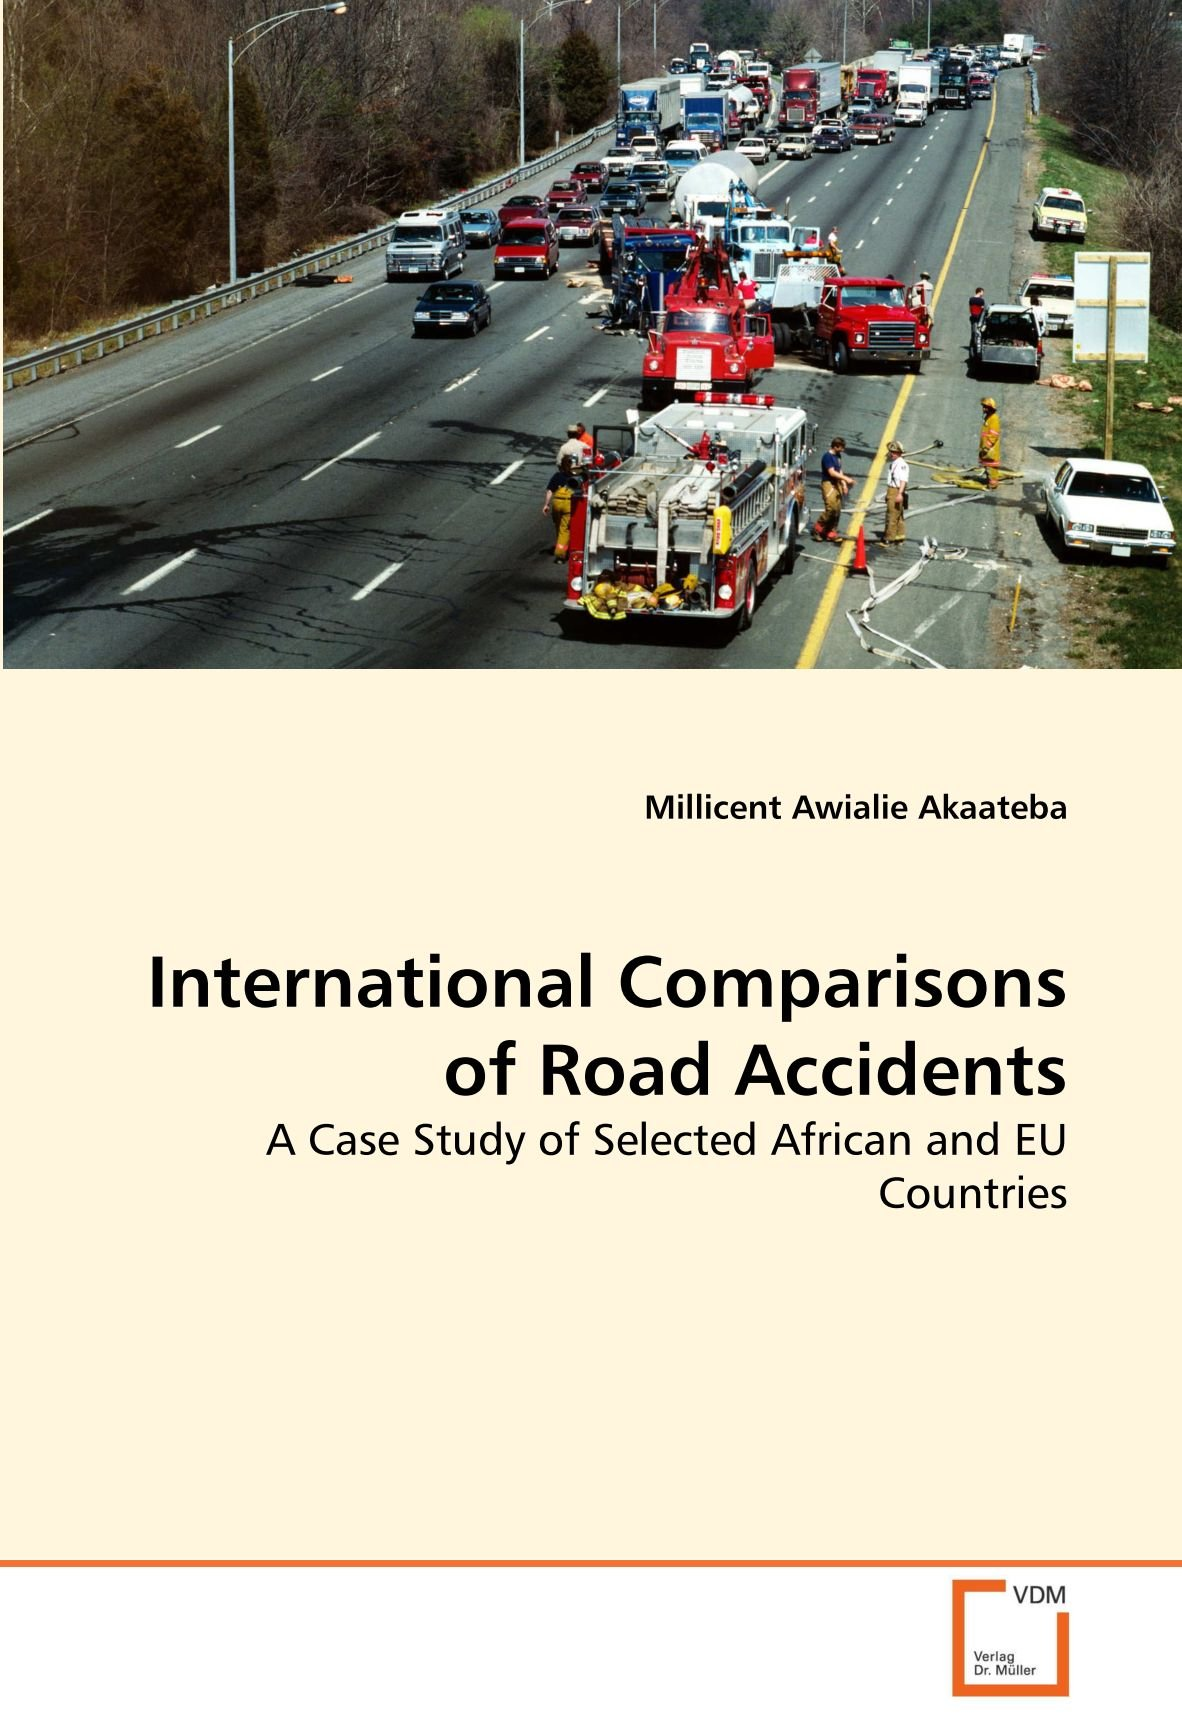 International Comparisons of Road Accidents: A Case Study of Selected African and EU Countries ebook